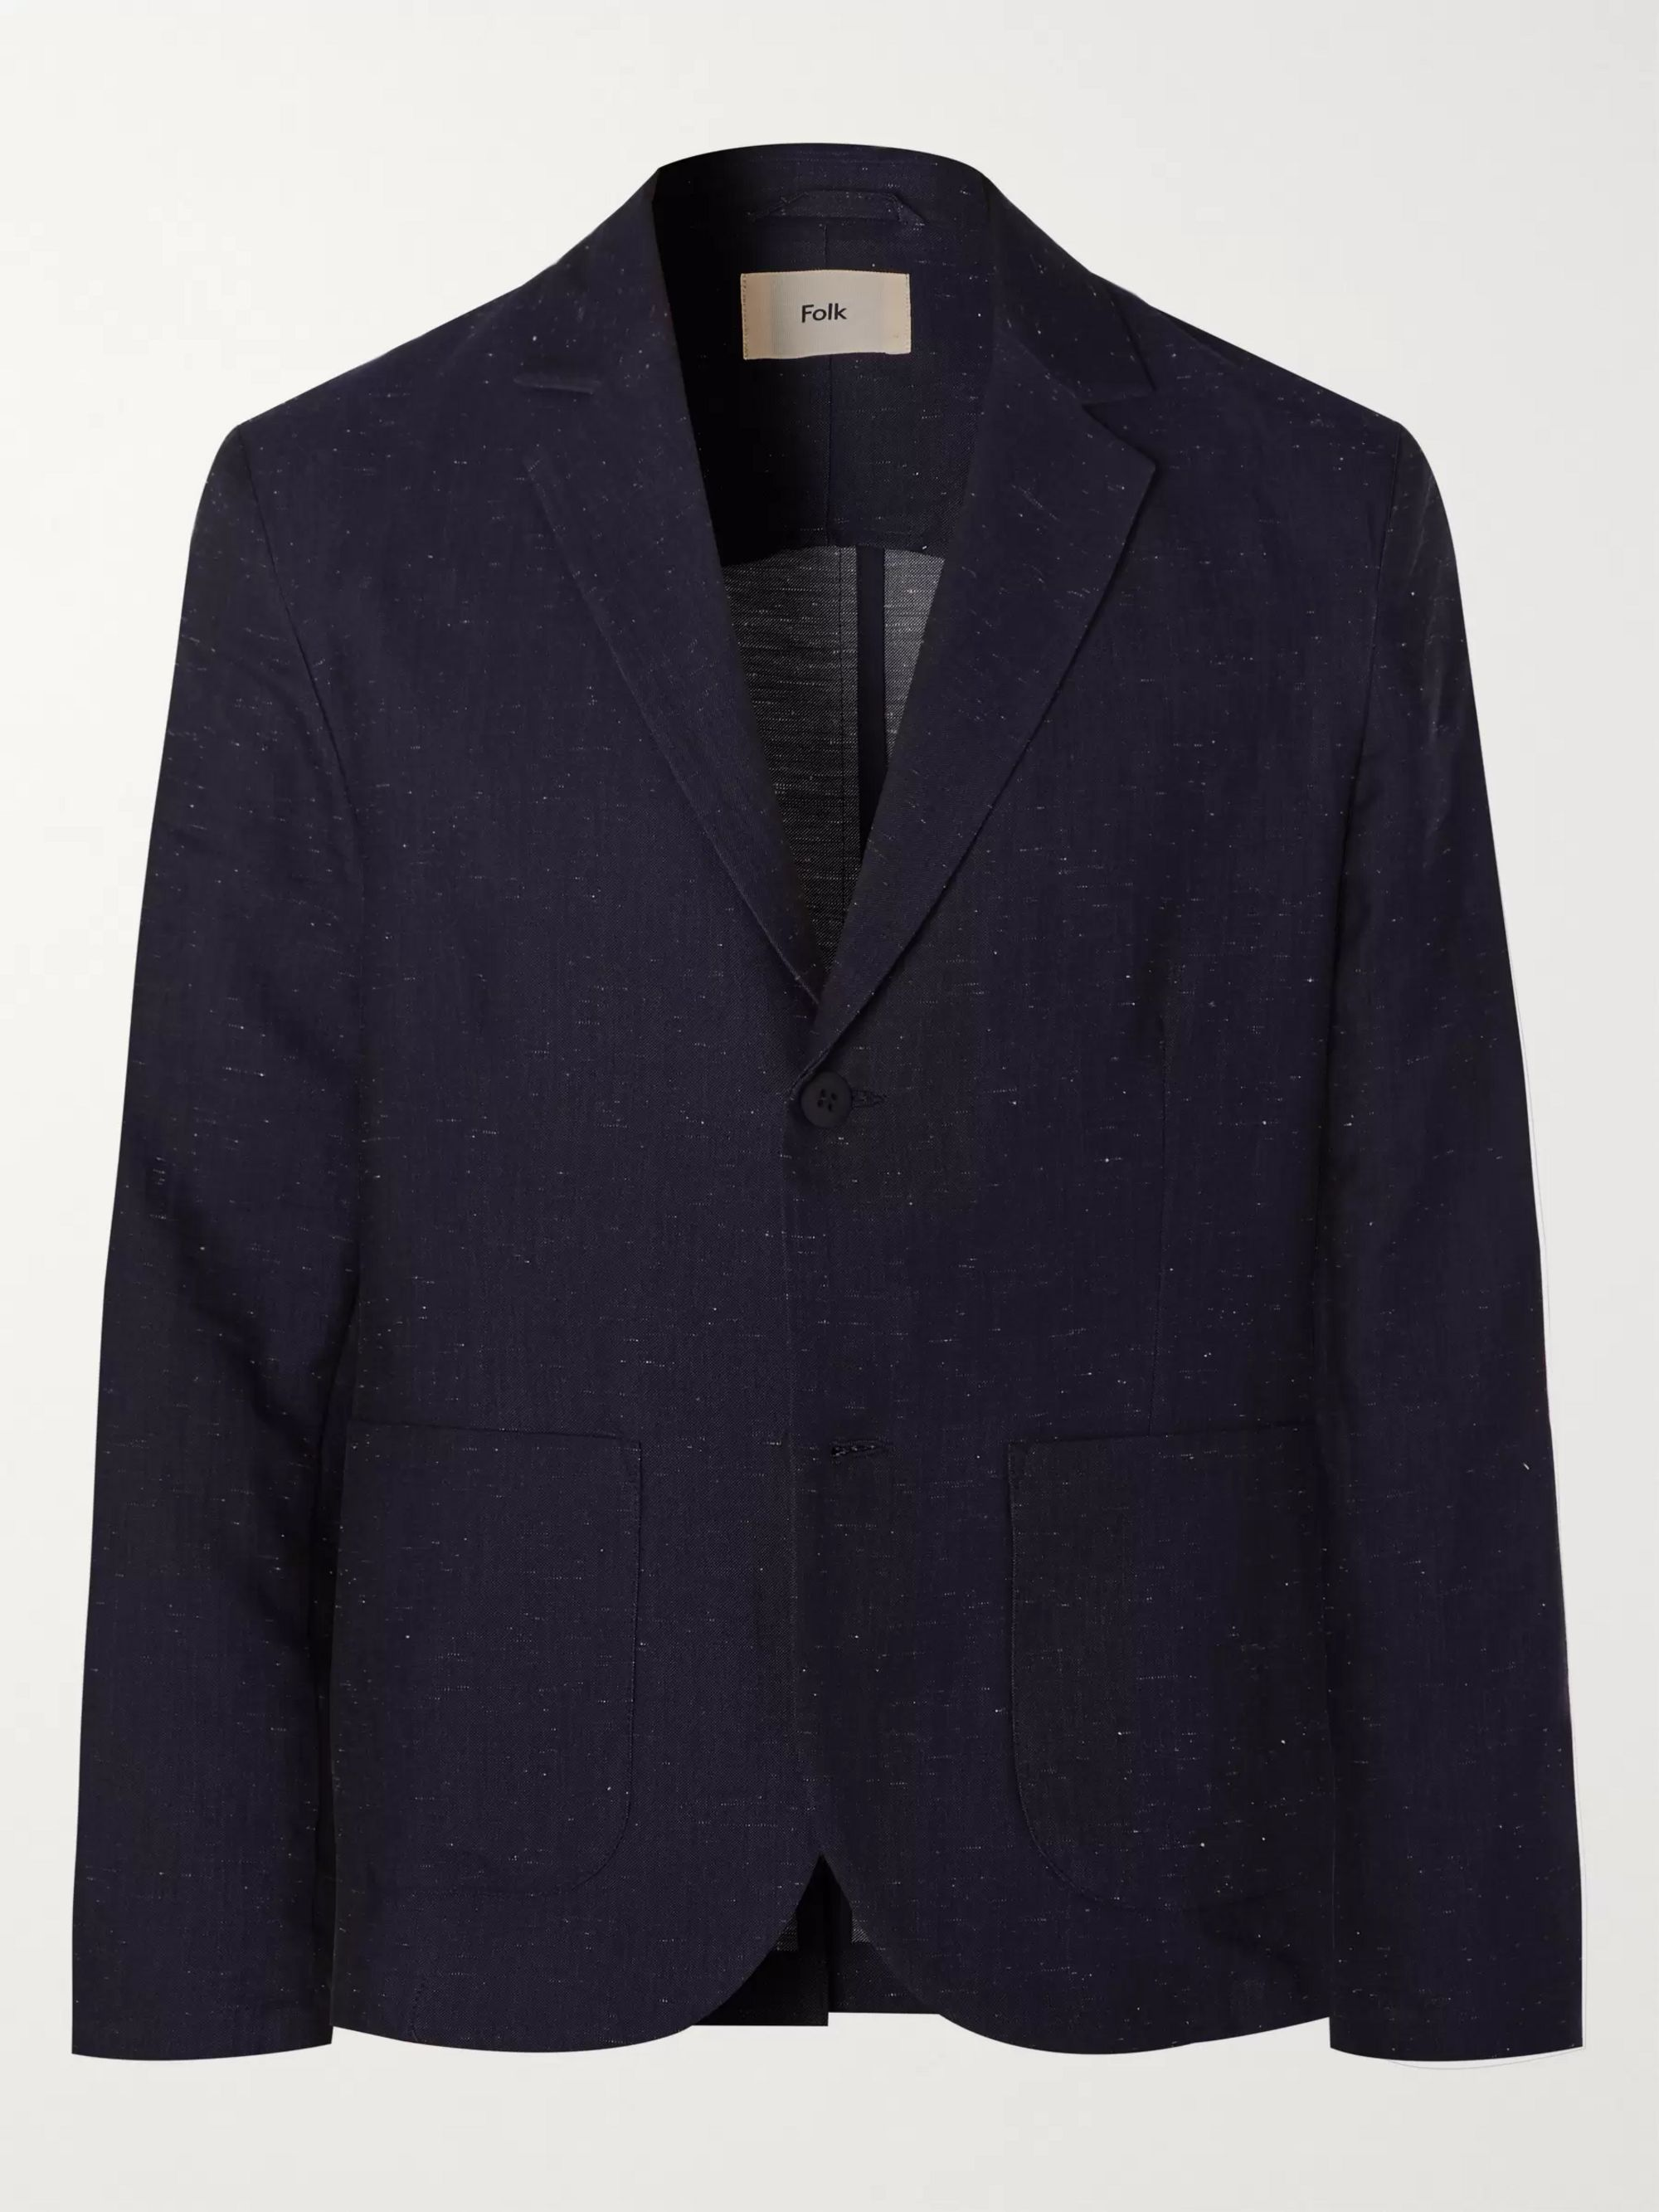 Navy Unstructured Slub Cotton Blend Blazer by Folk